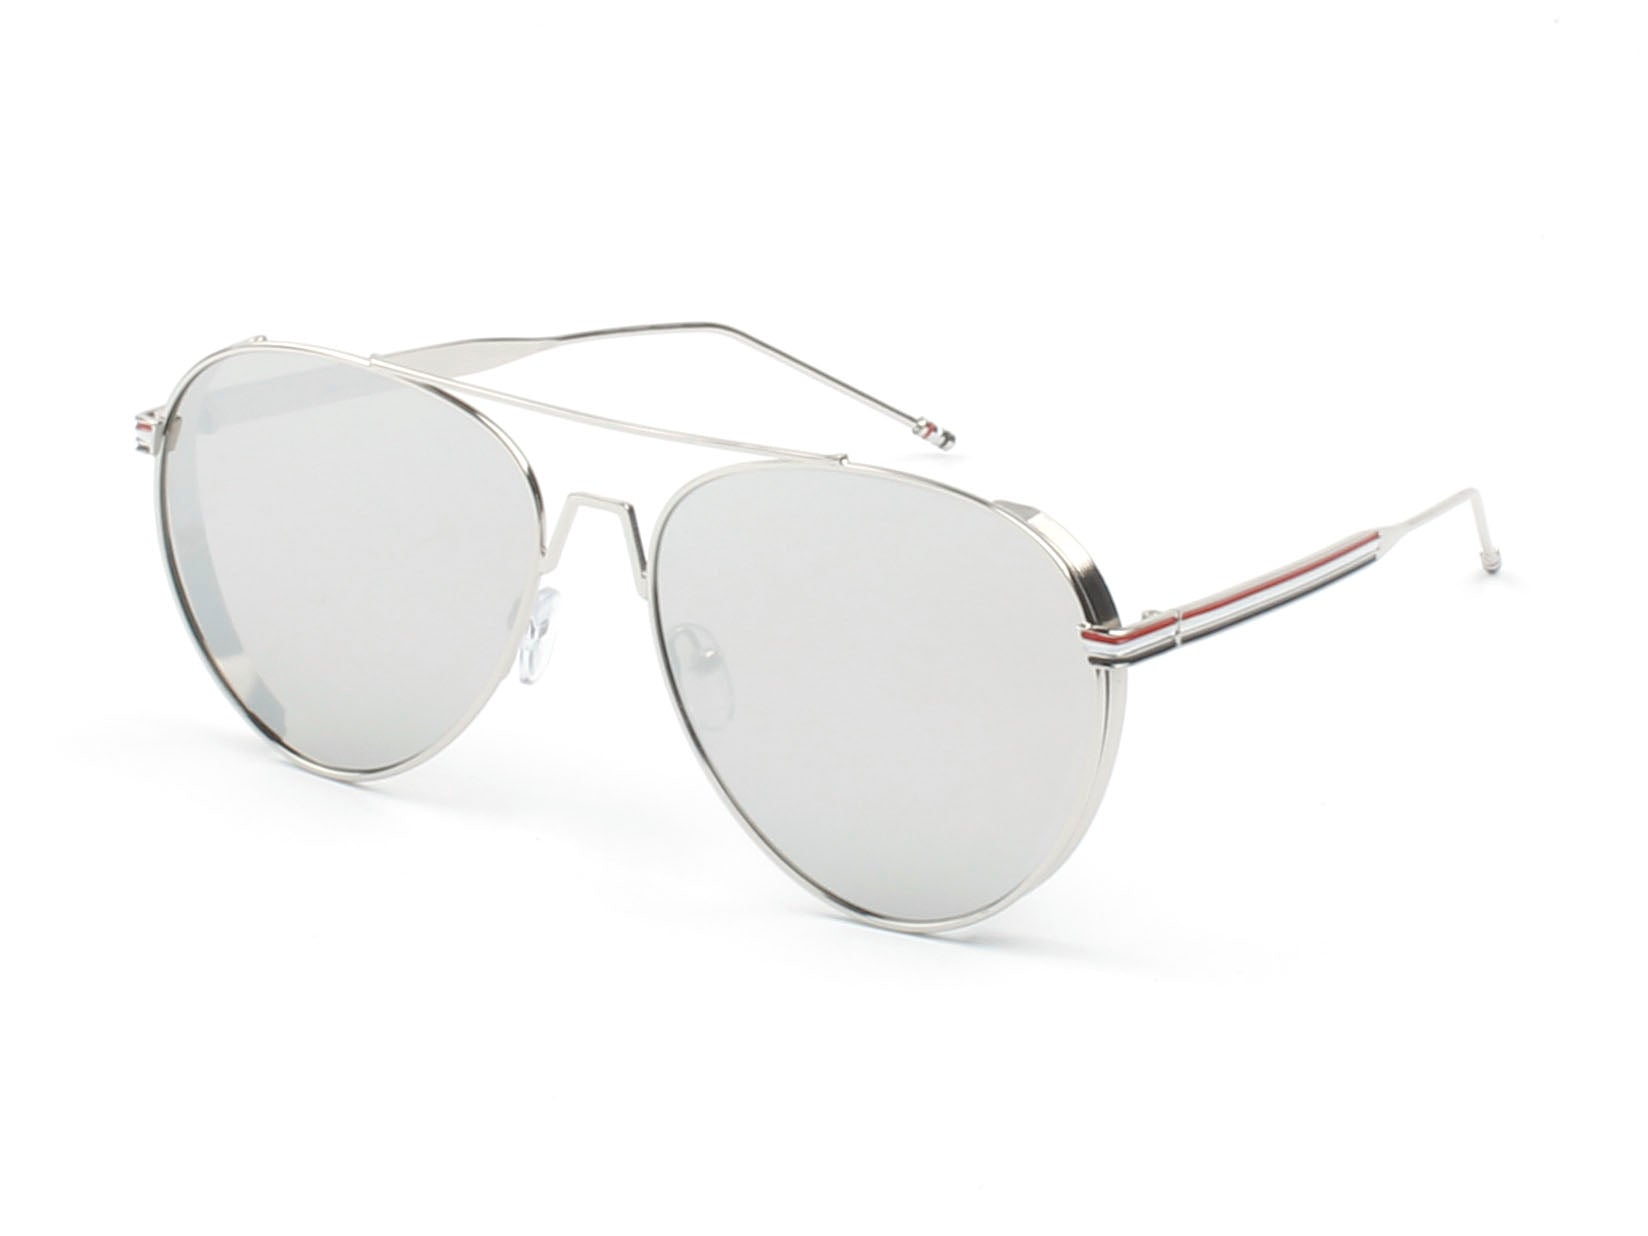 Classic Metal Aviator Fashion Sunglasses for Men and Women - Silver